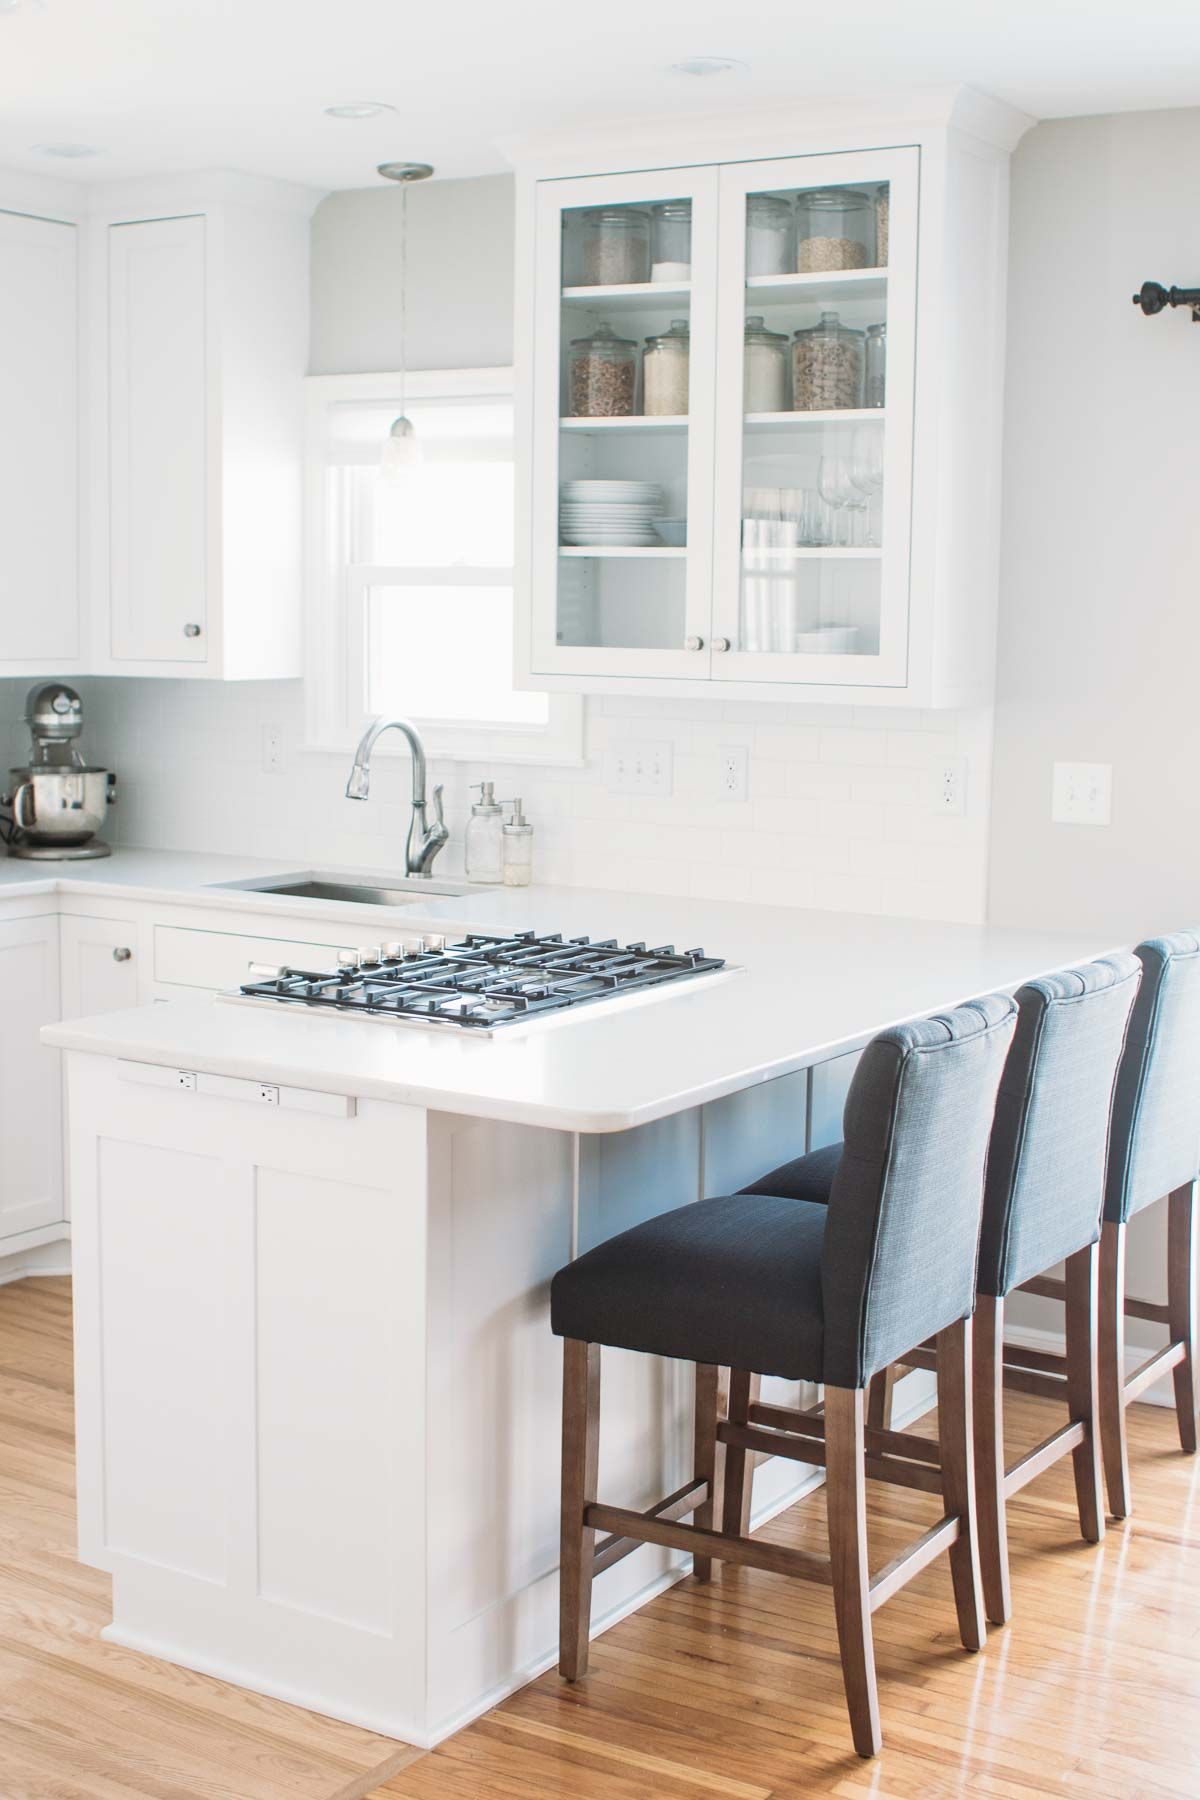 Kitchen Remodel Updating From A Dark Small Enclosed Space To An